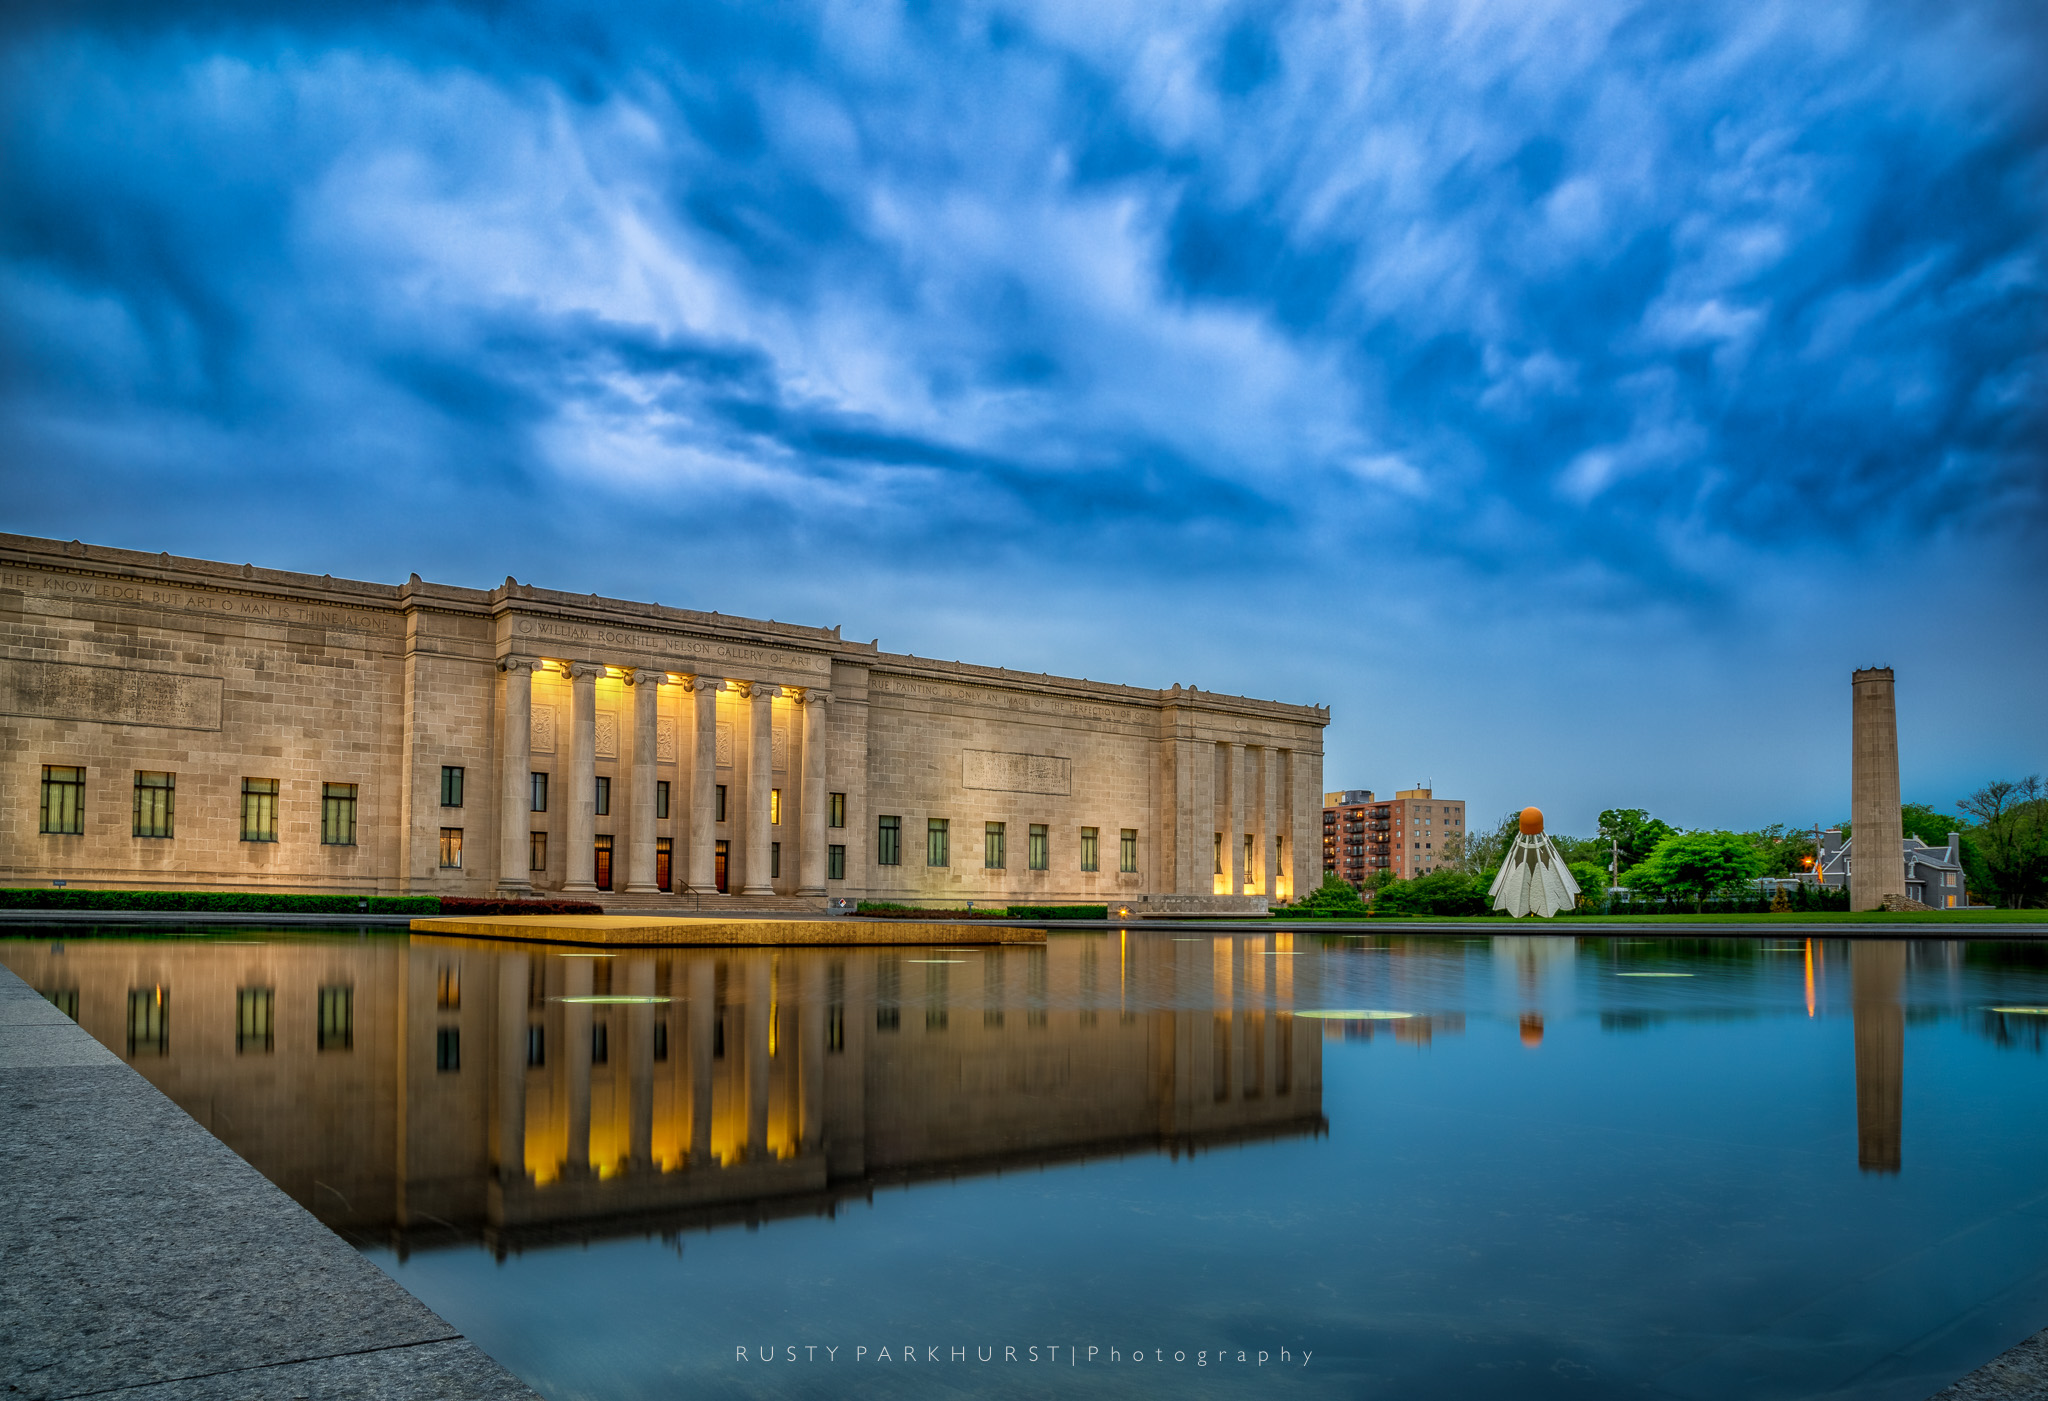 Nelson-Atkins Museum   - taken May 7, 2015.  I had seen photos of it before and wanted to make my own images of this museum of art in Kansas City.  The sky was pretty dramatic on this evening and the wind was calm to help with some nice reflections in the pool.